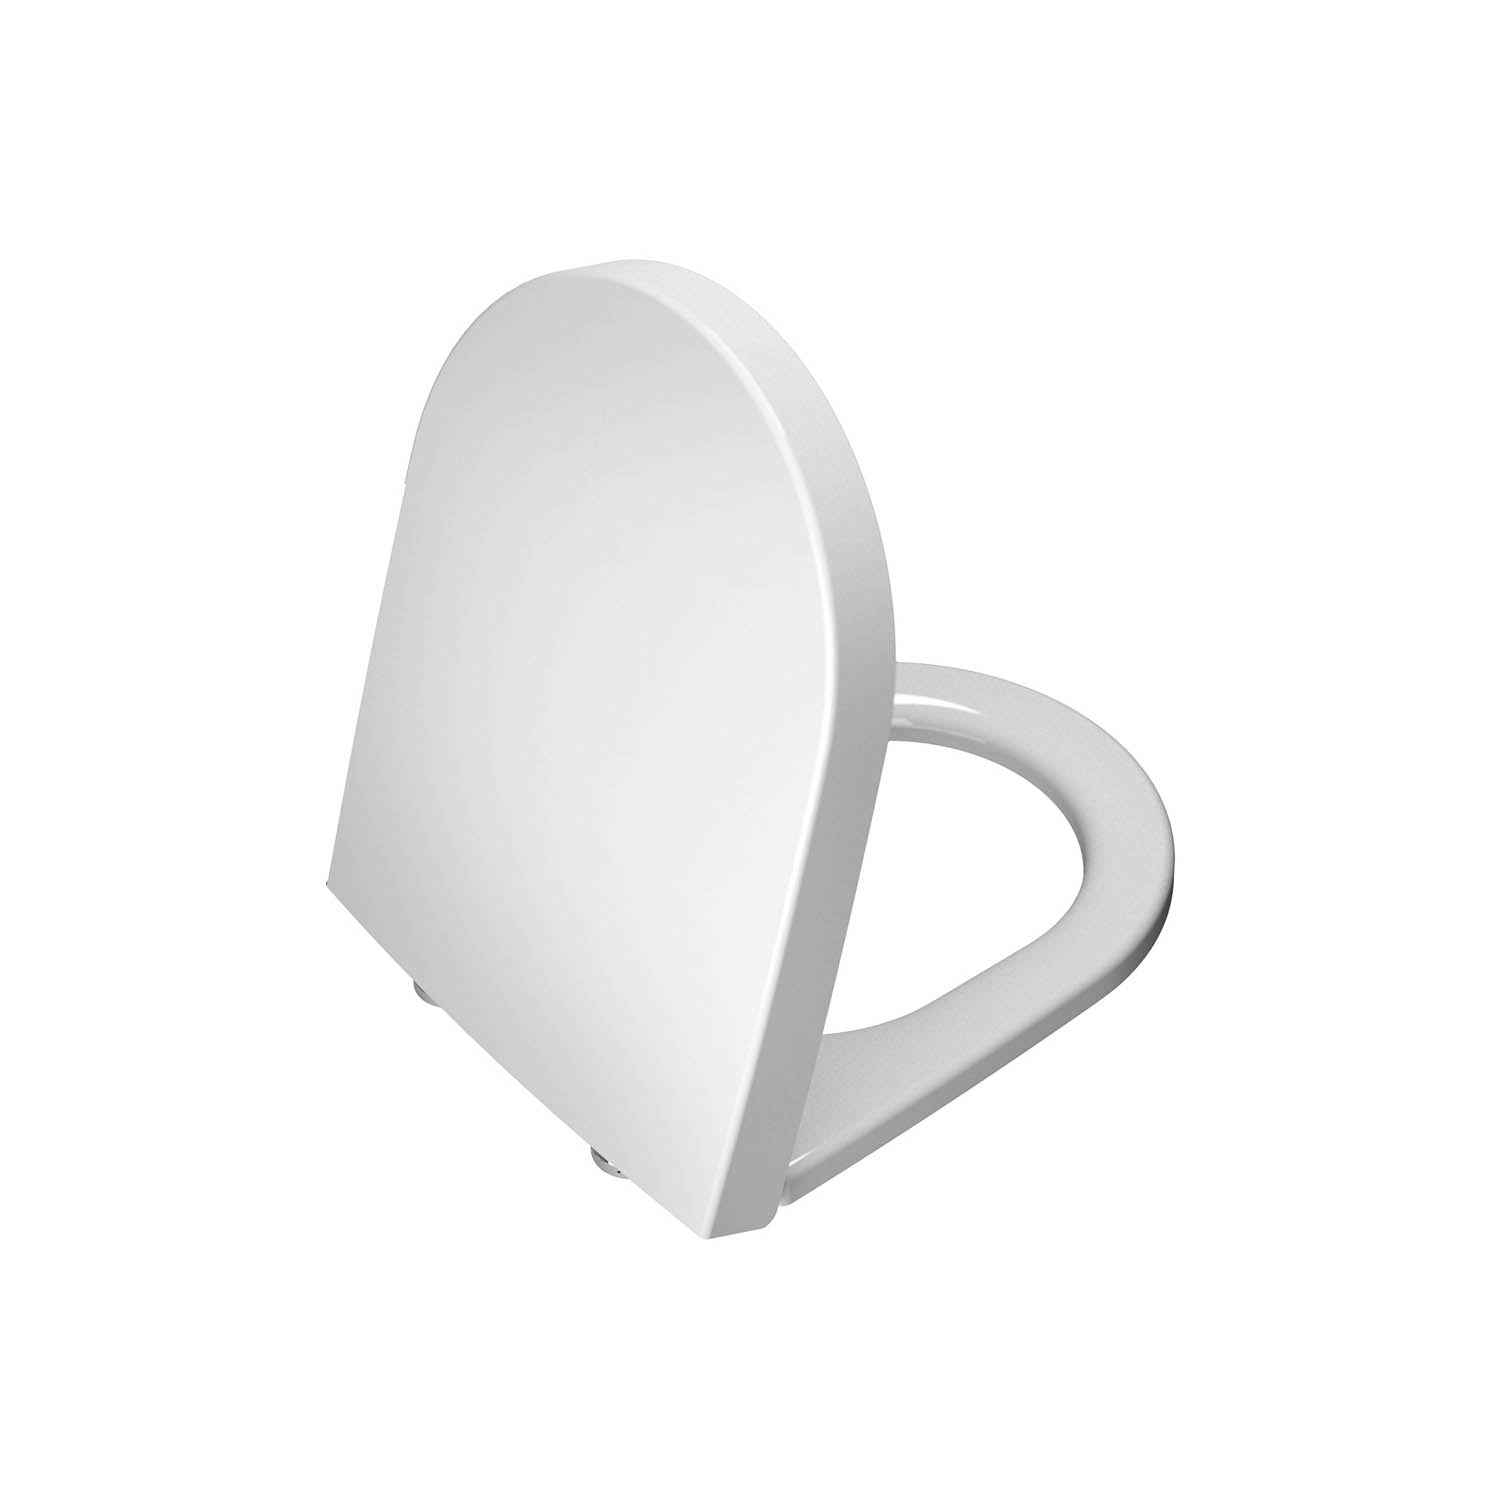 Matrix Long Projection Toilet Seat Ring on a white background